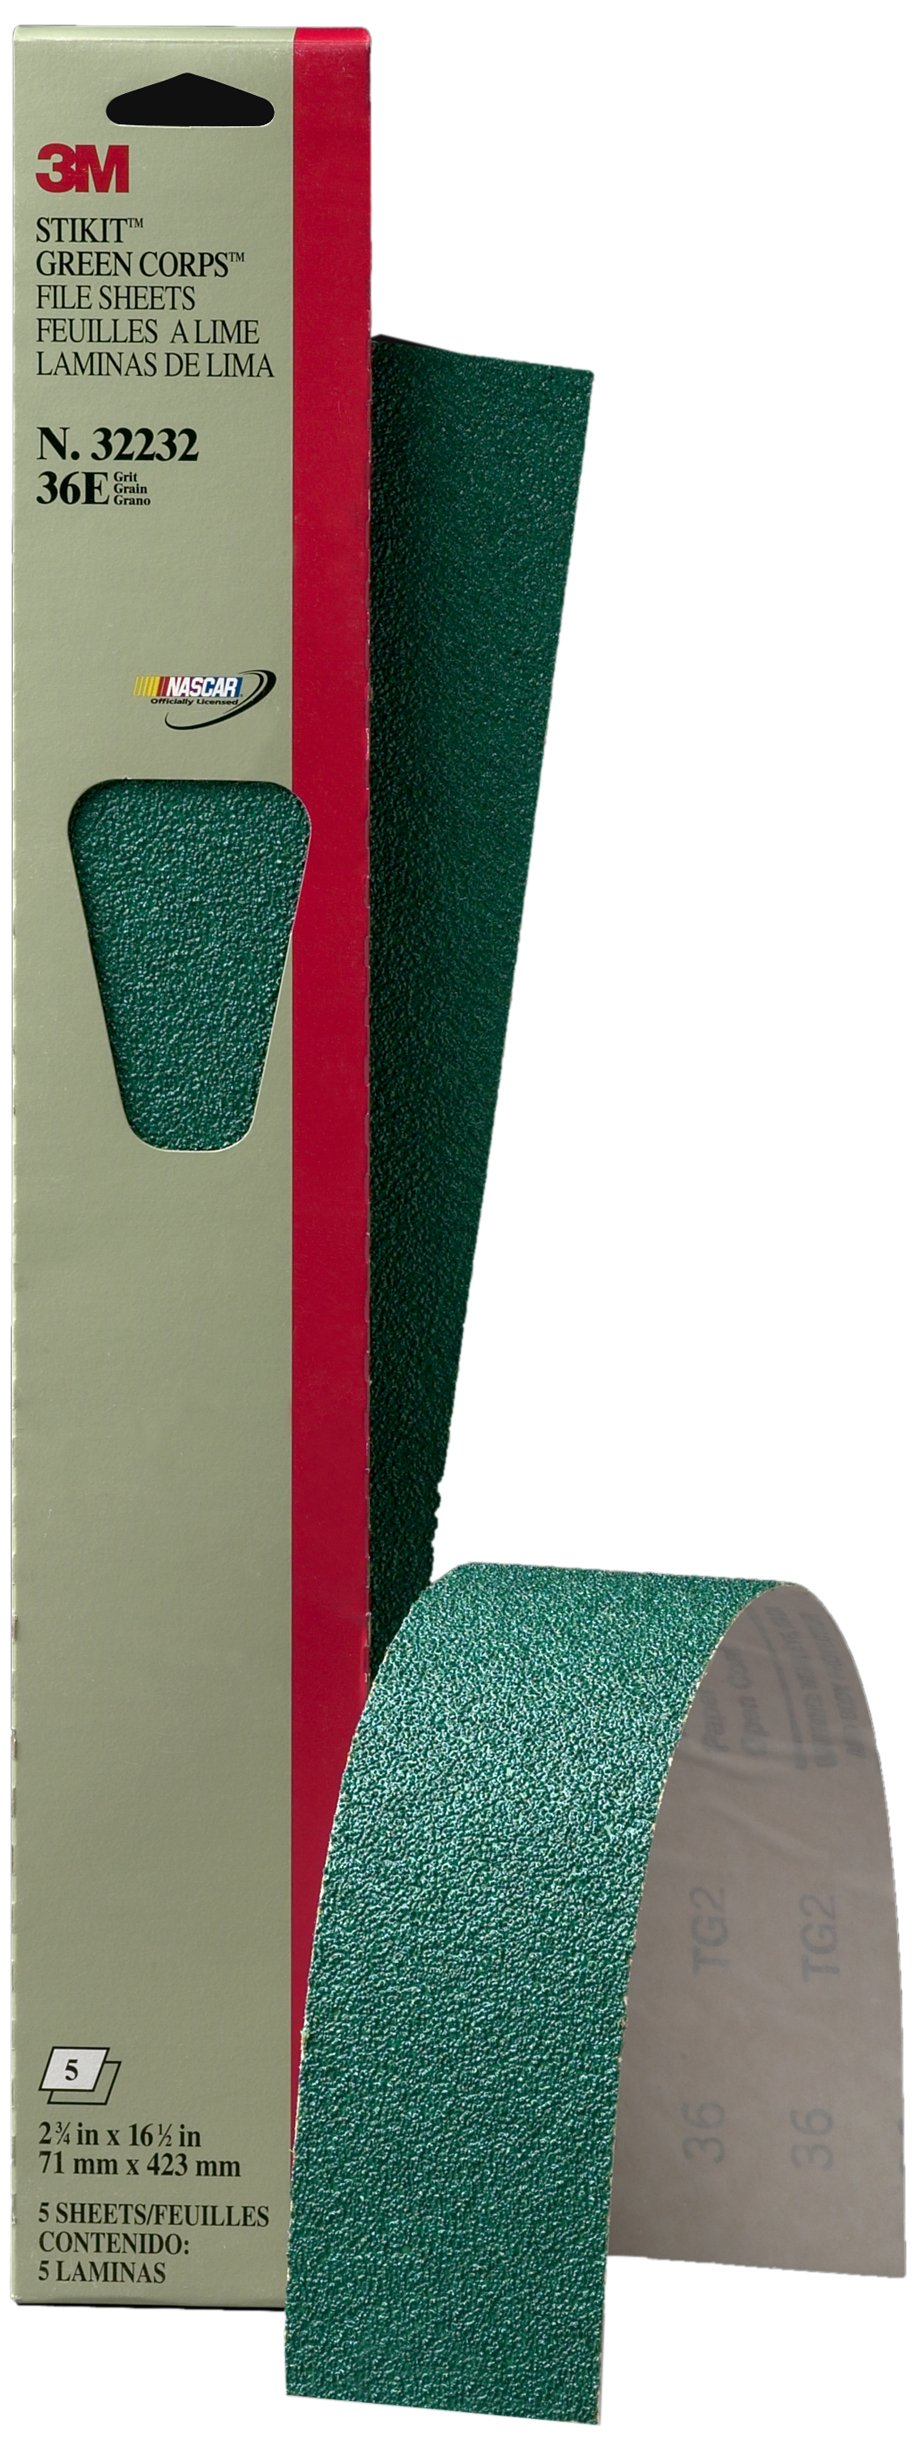 3M 32232 Stikit Green Corps 2-3/4'' x 16 1/2'' 36E Grit Sheet (Pack of 10)